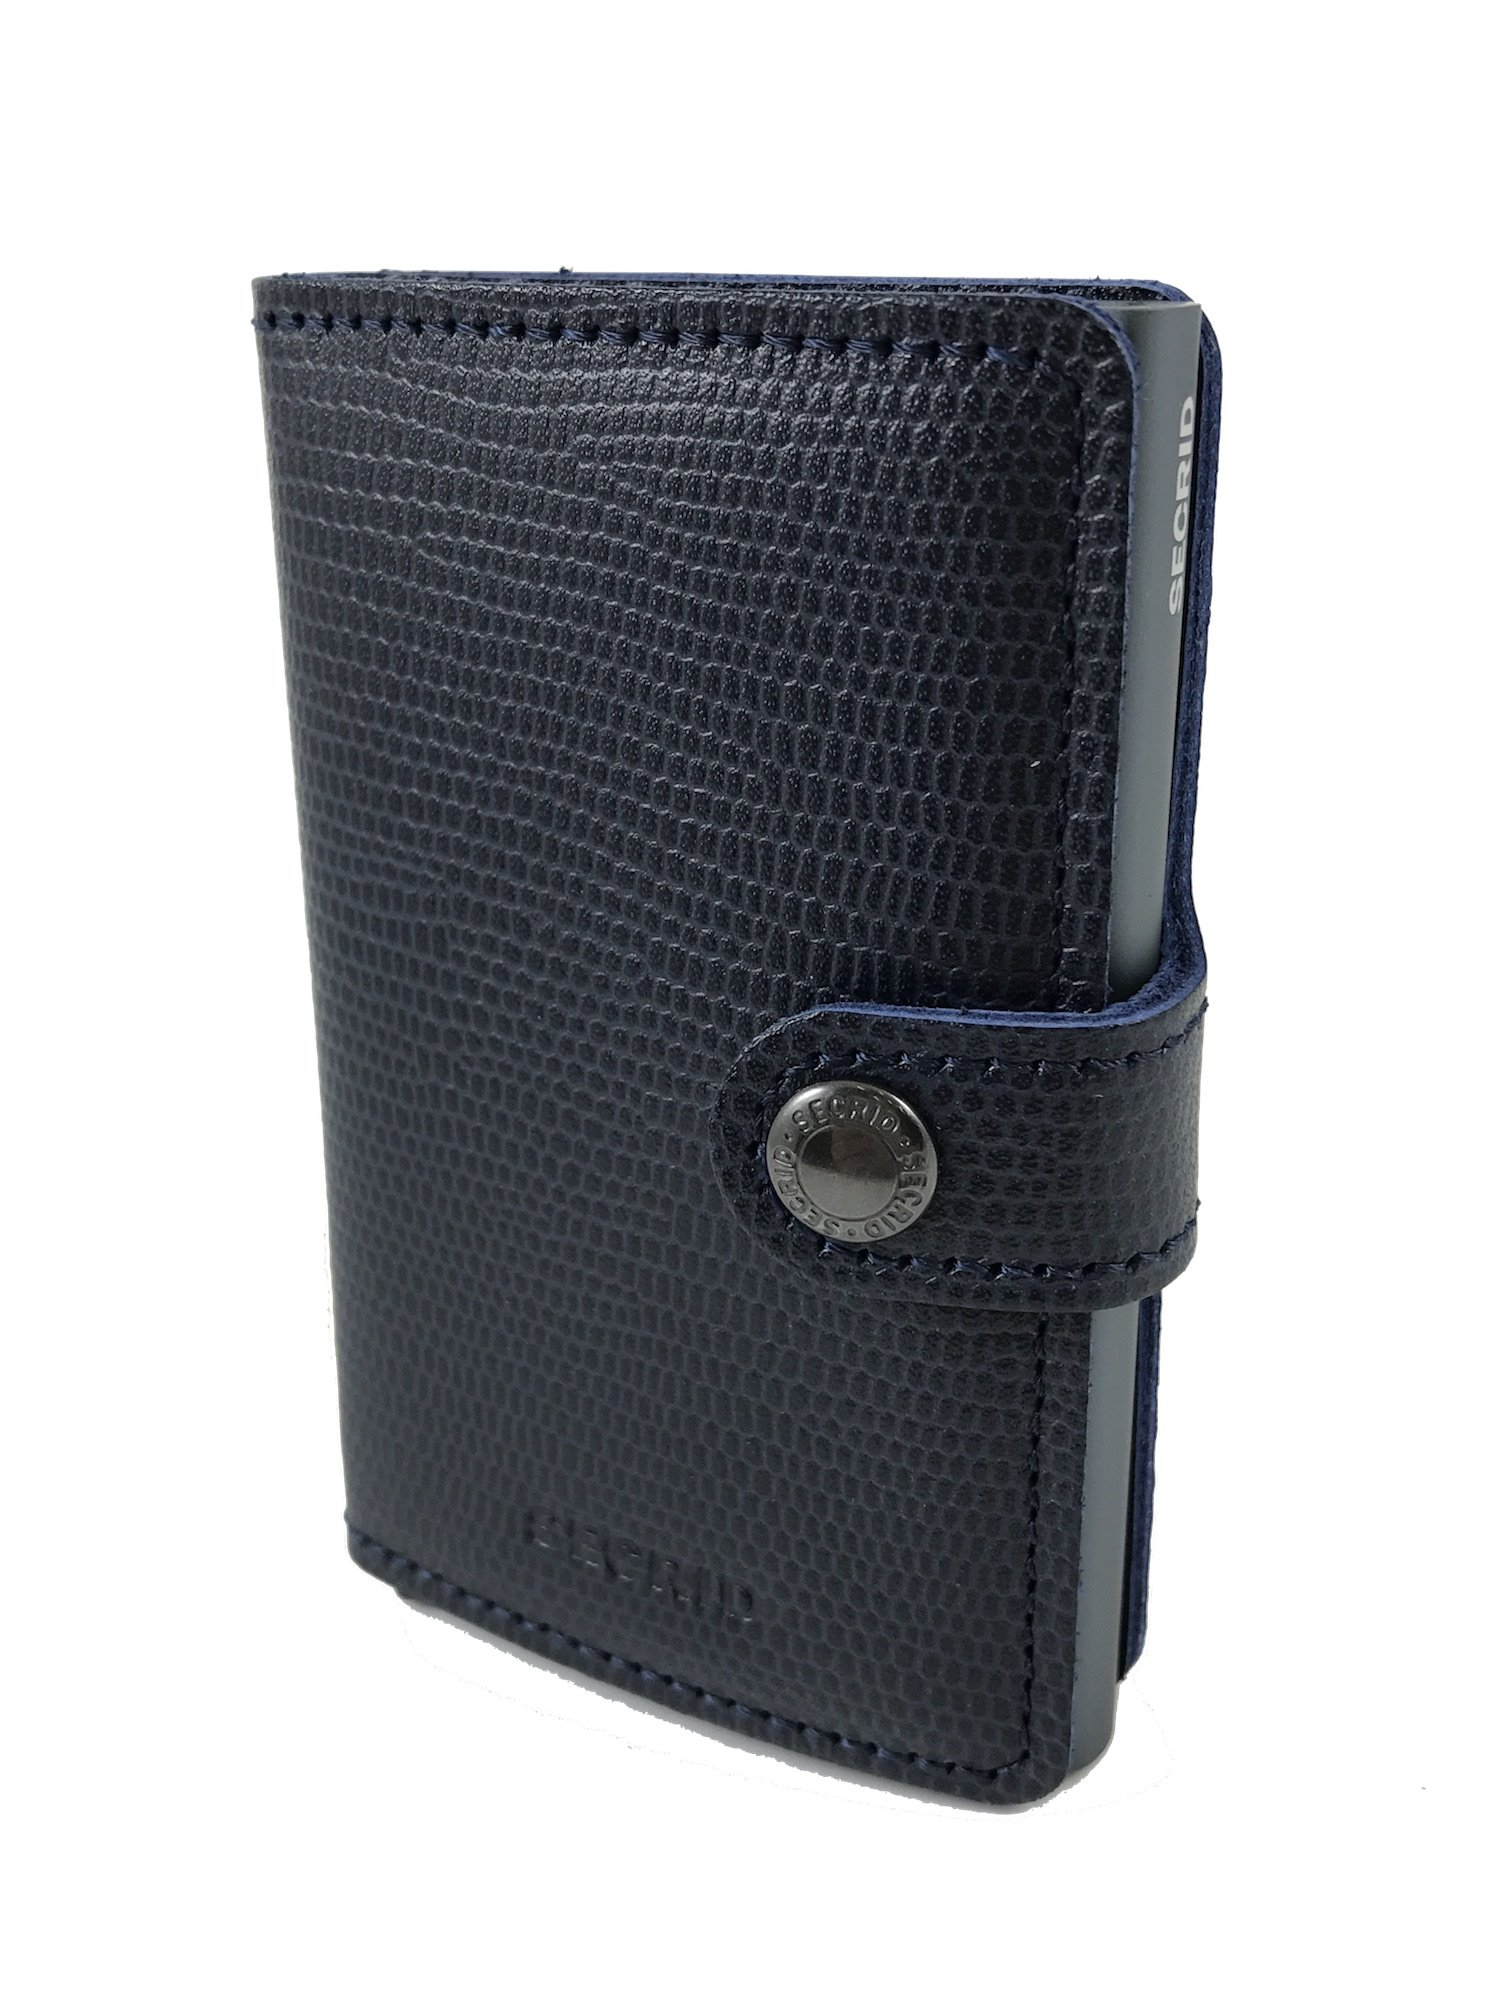 Secrid Miniwallet Rango Blue Titanium Leather Wallet SC5557 by Secrid